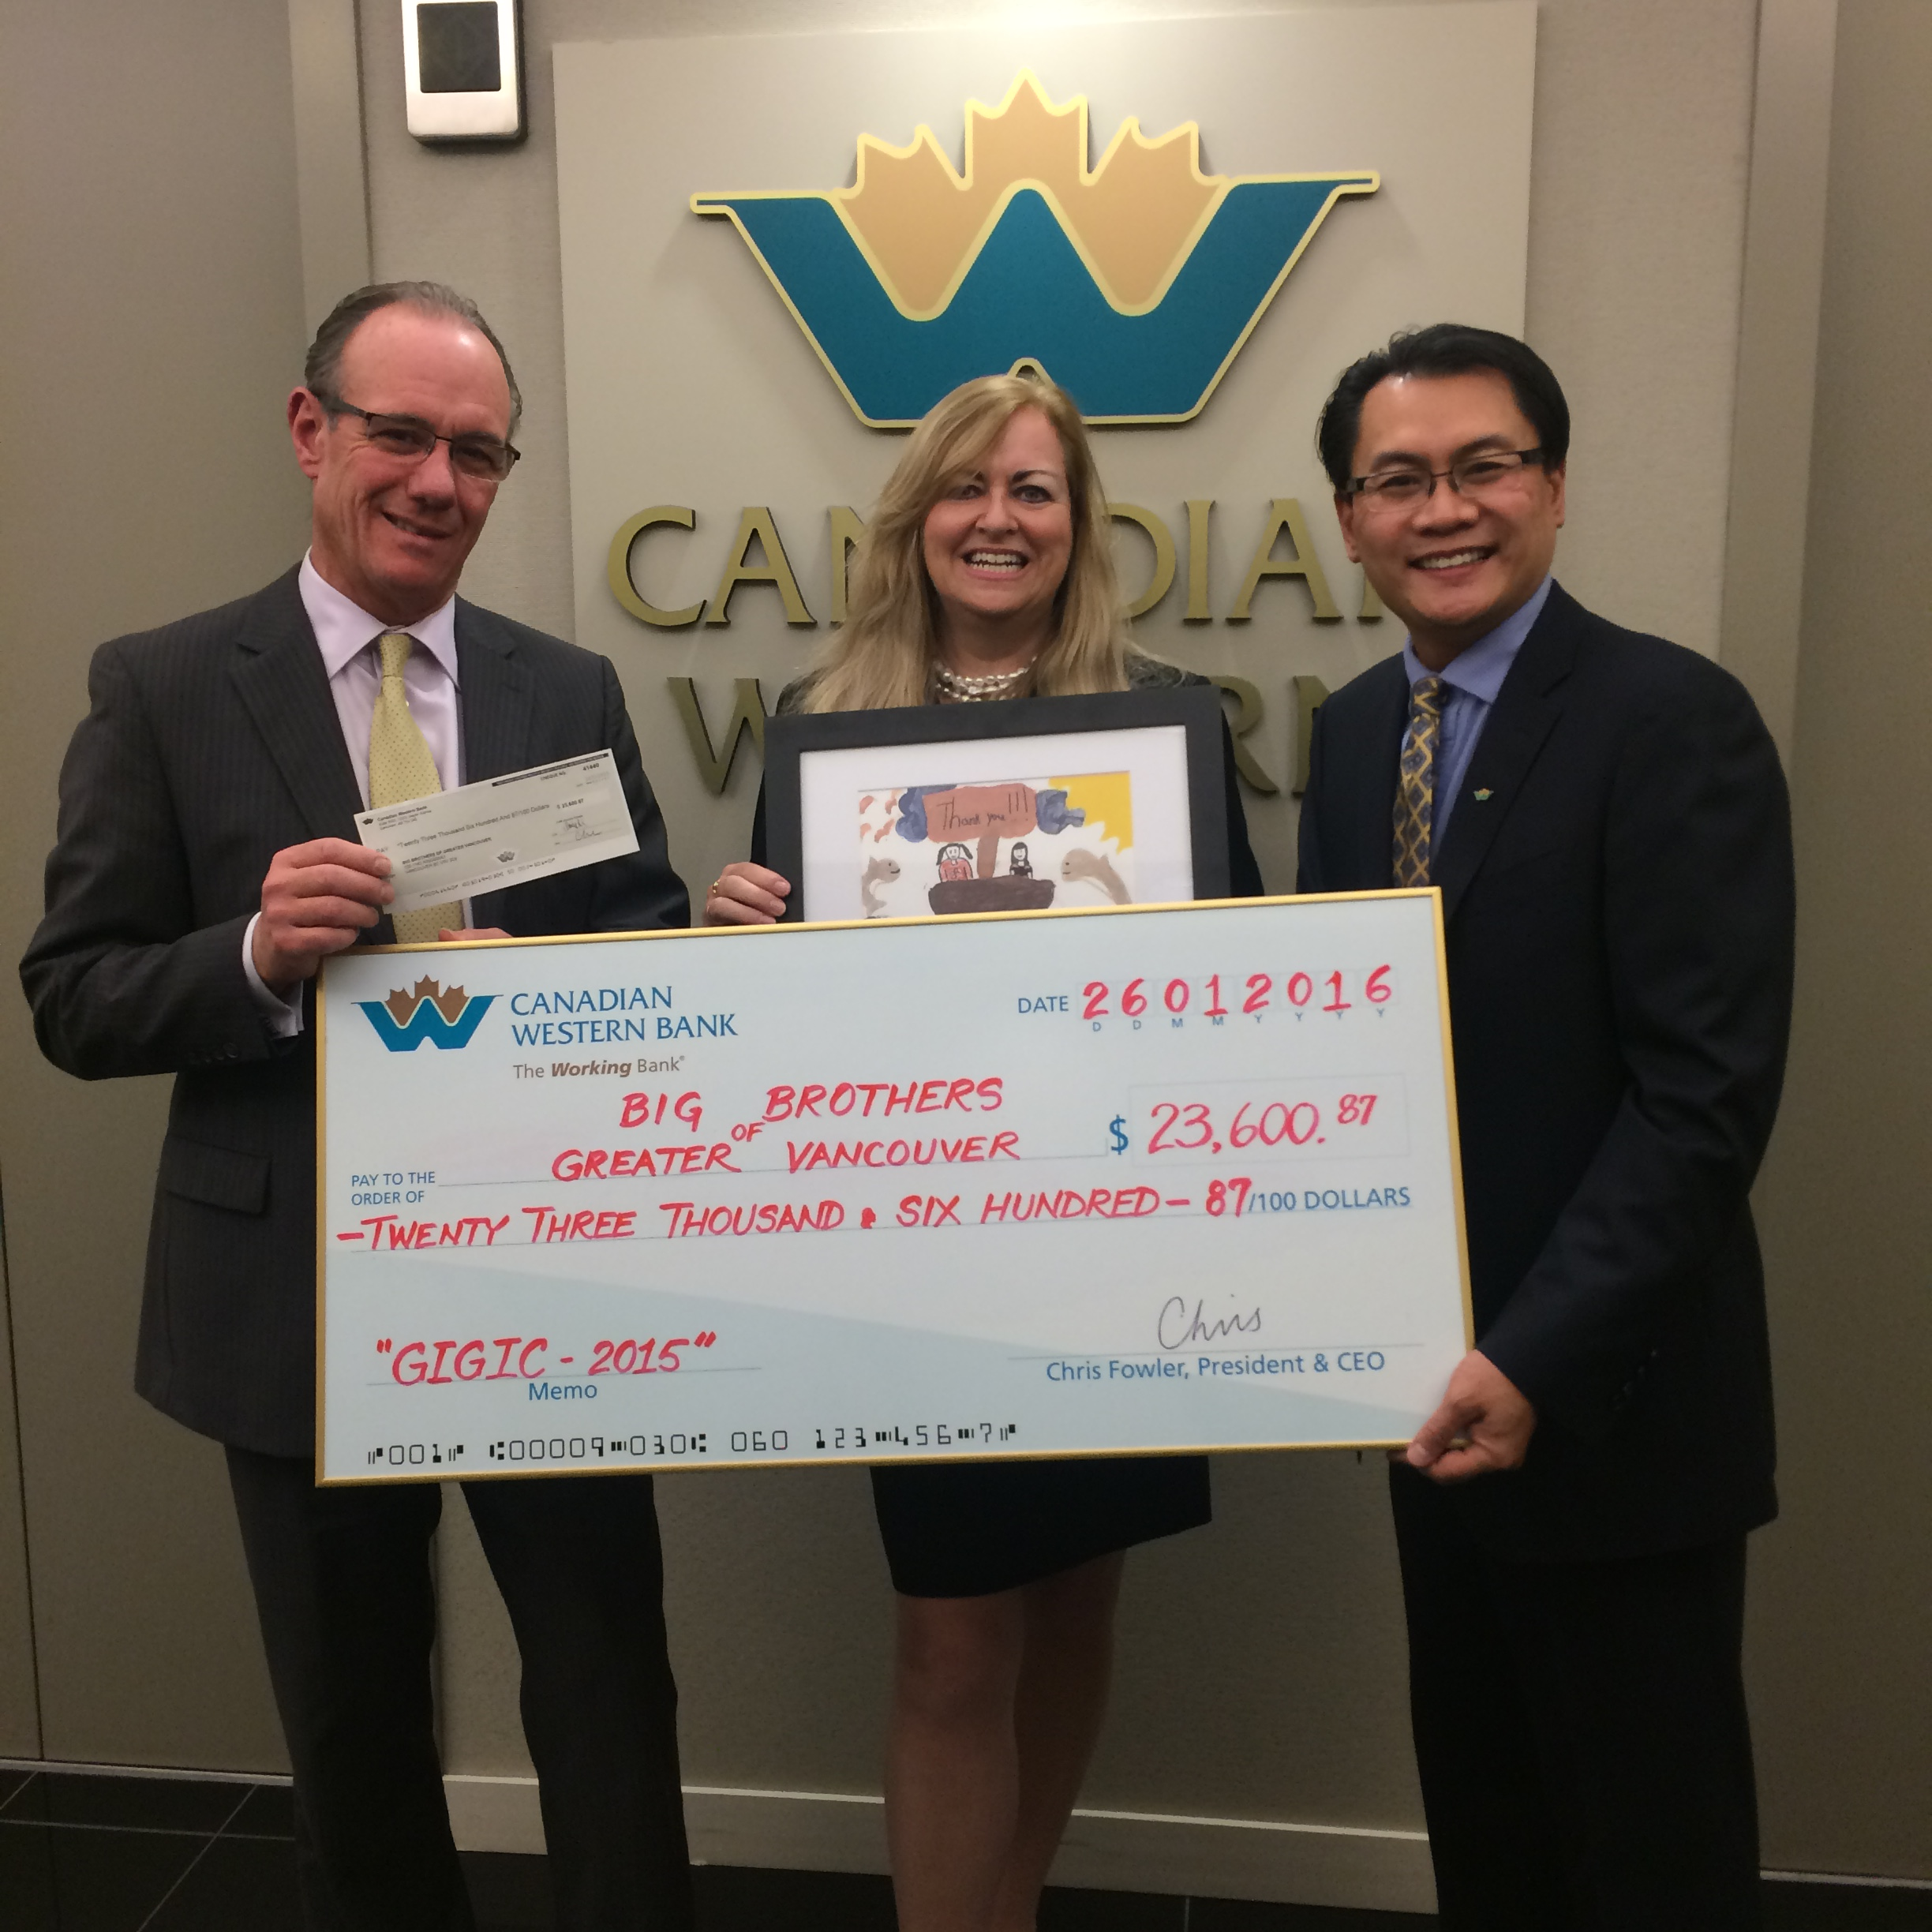 Canadian Western Bank donates more than $421,000 to support local mentoring programs